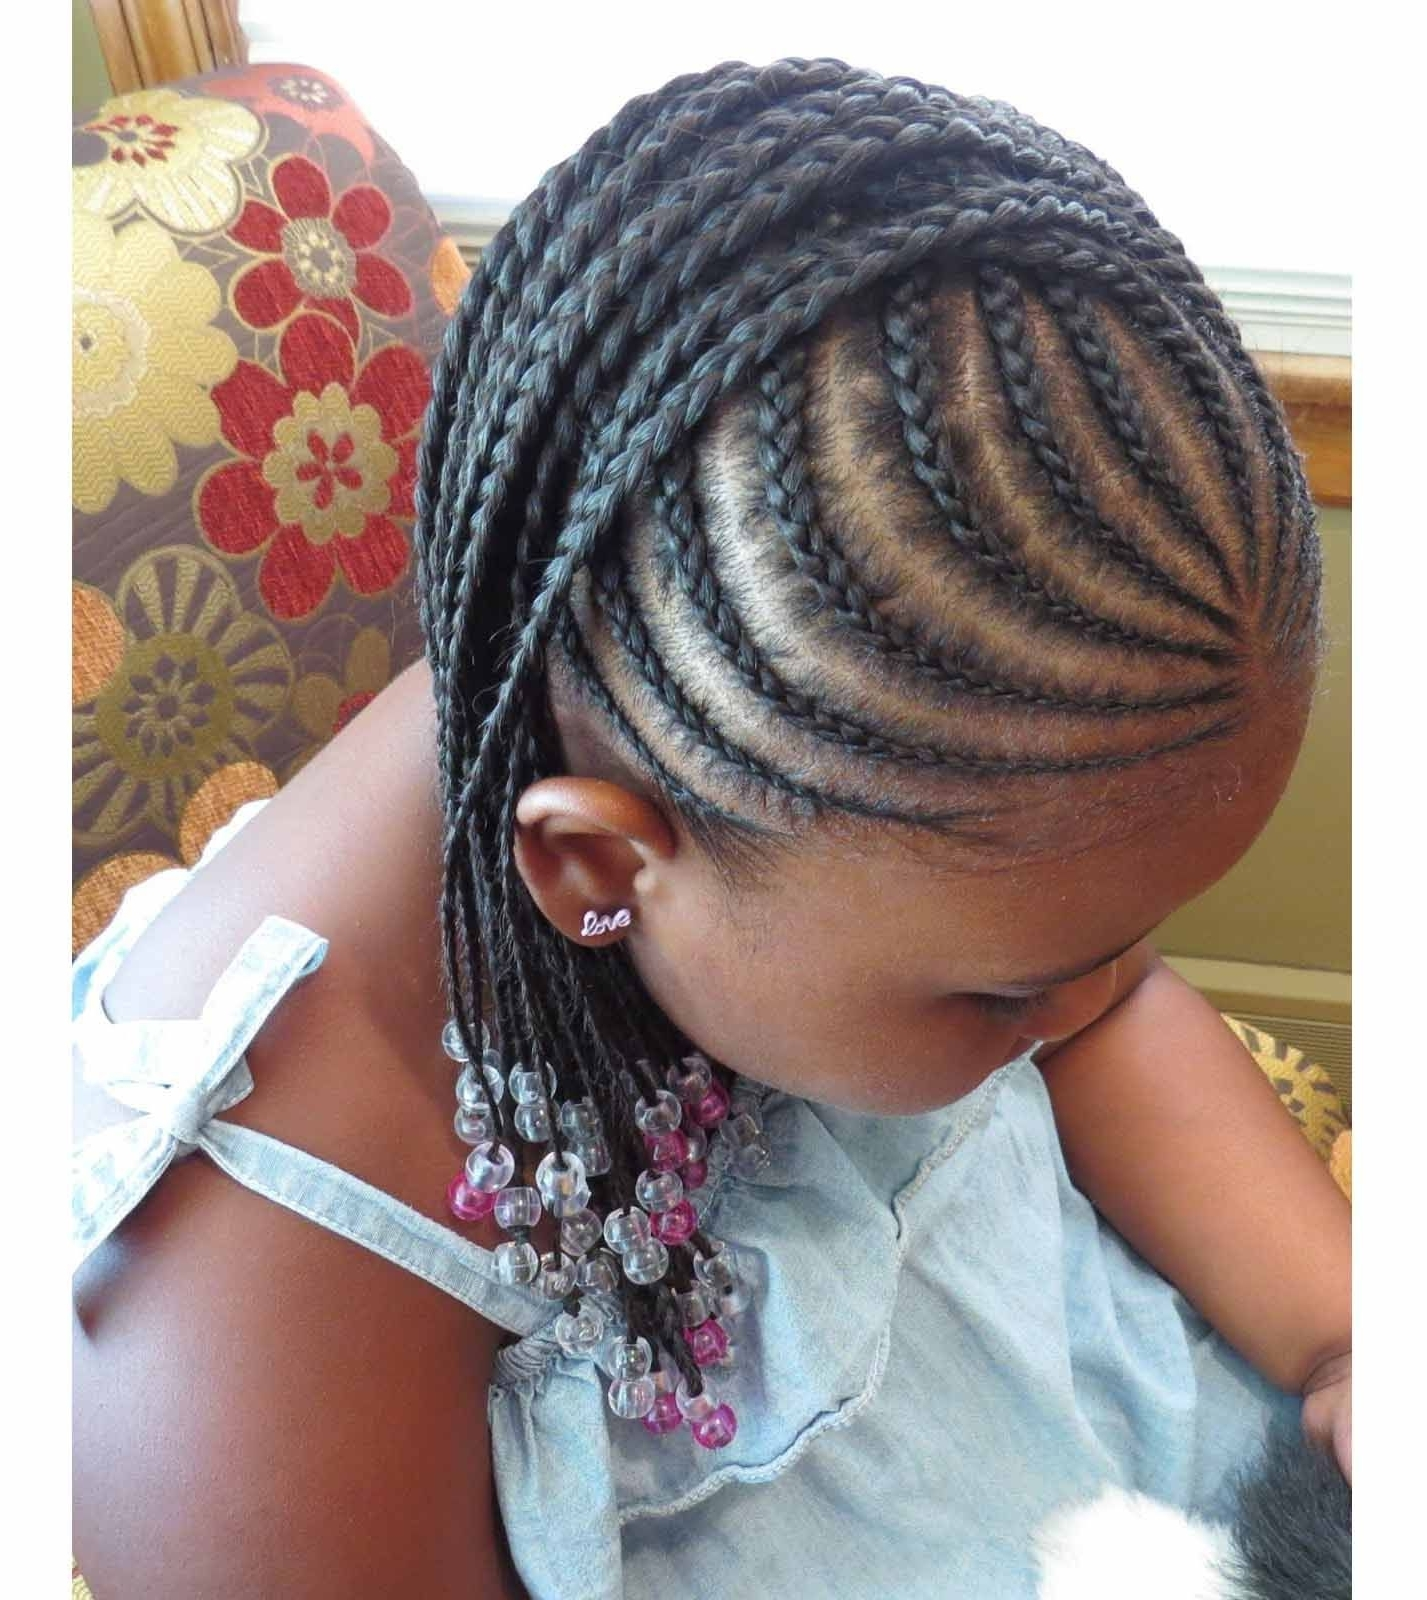 Well Known Black Girl Braided Hairstyles Pertaining To Braided Hairstyles For Little Black Girls With Different Details (View 4 of 15)